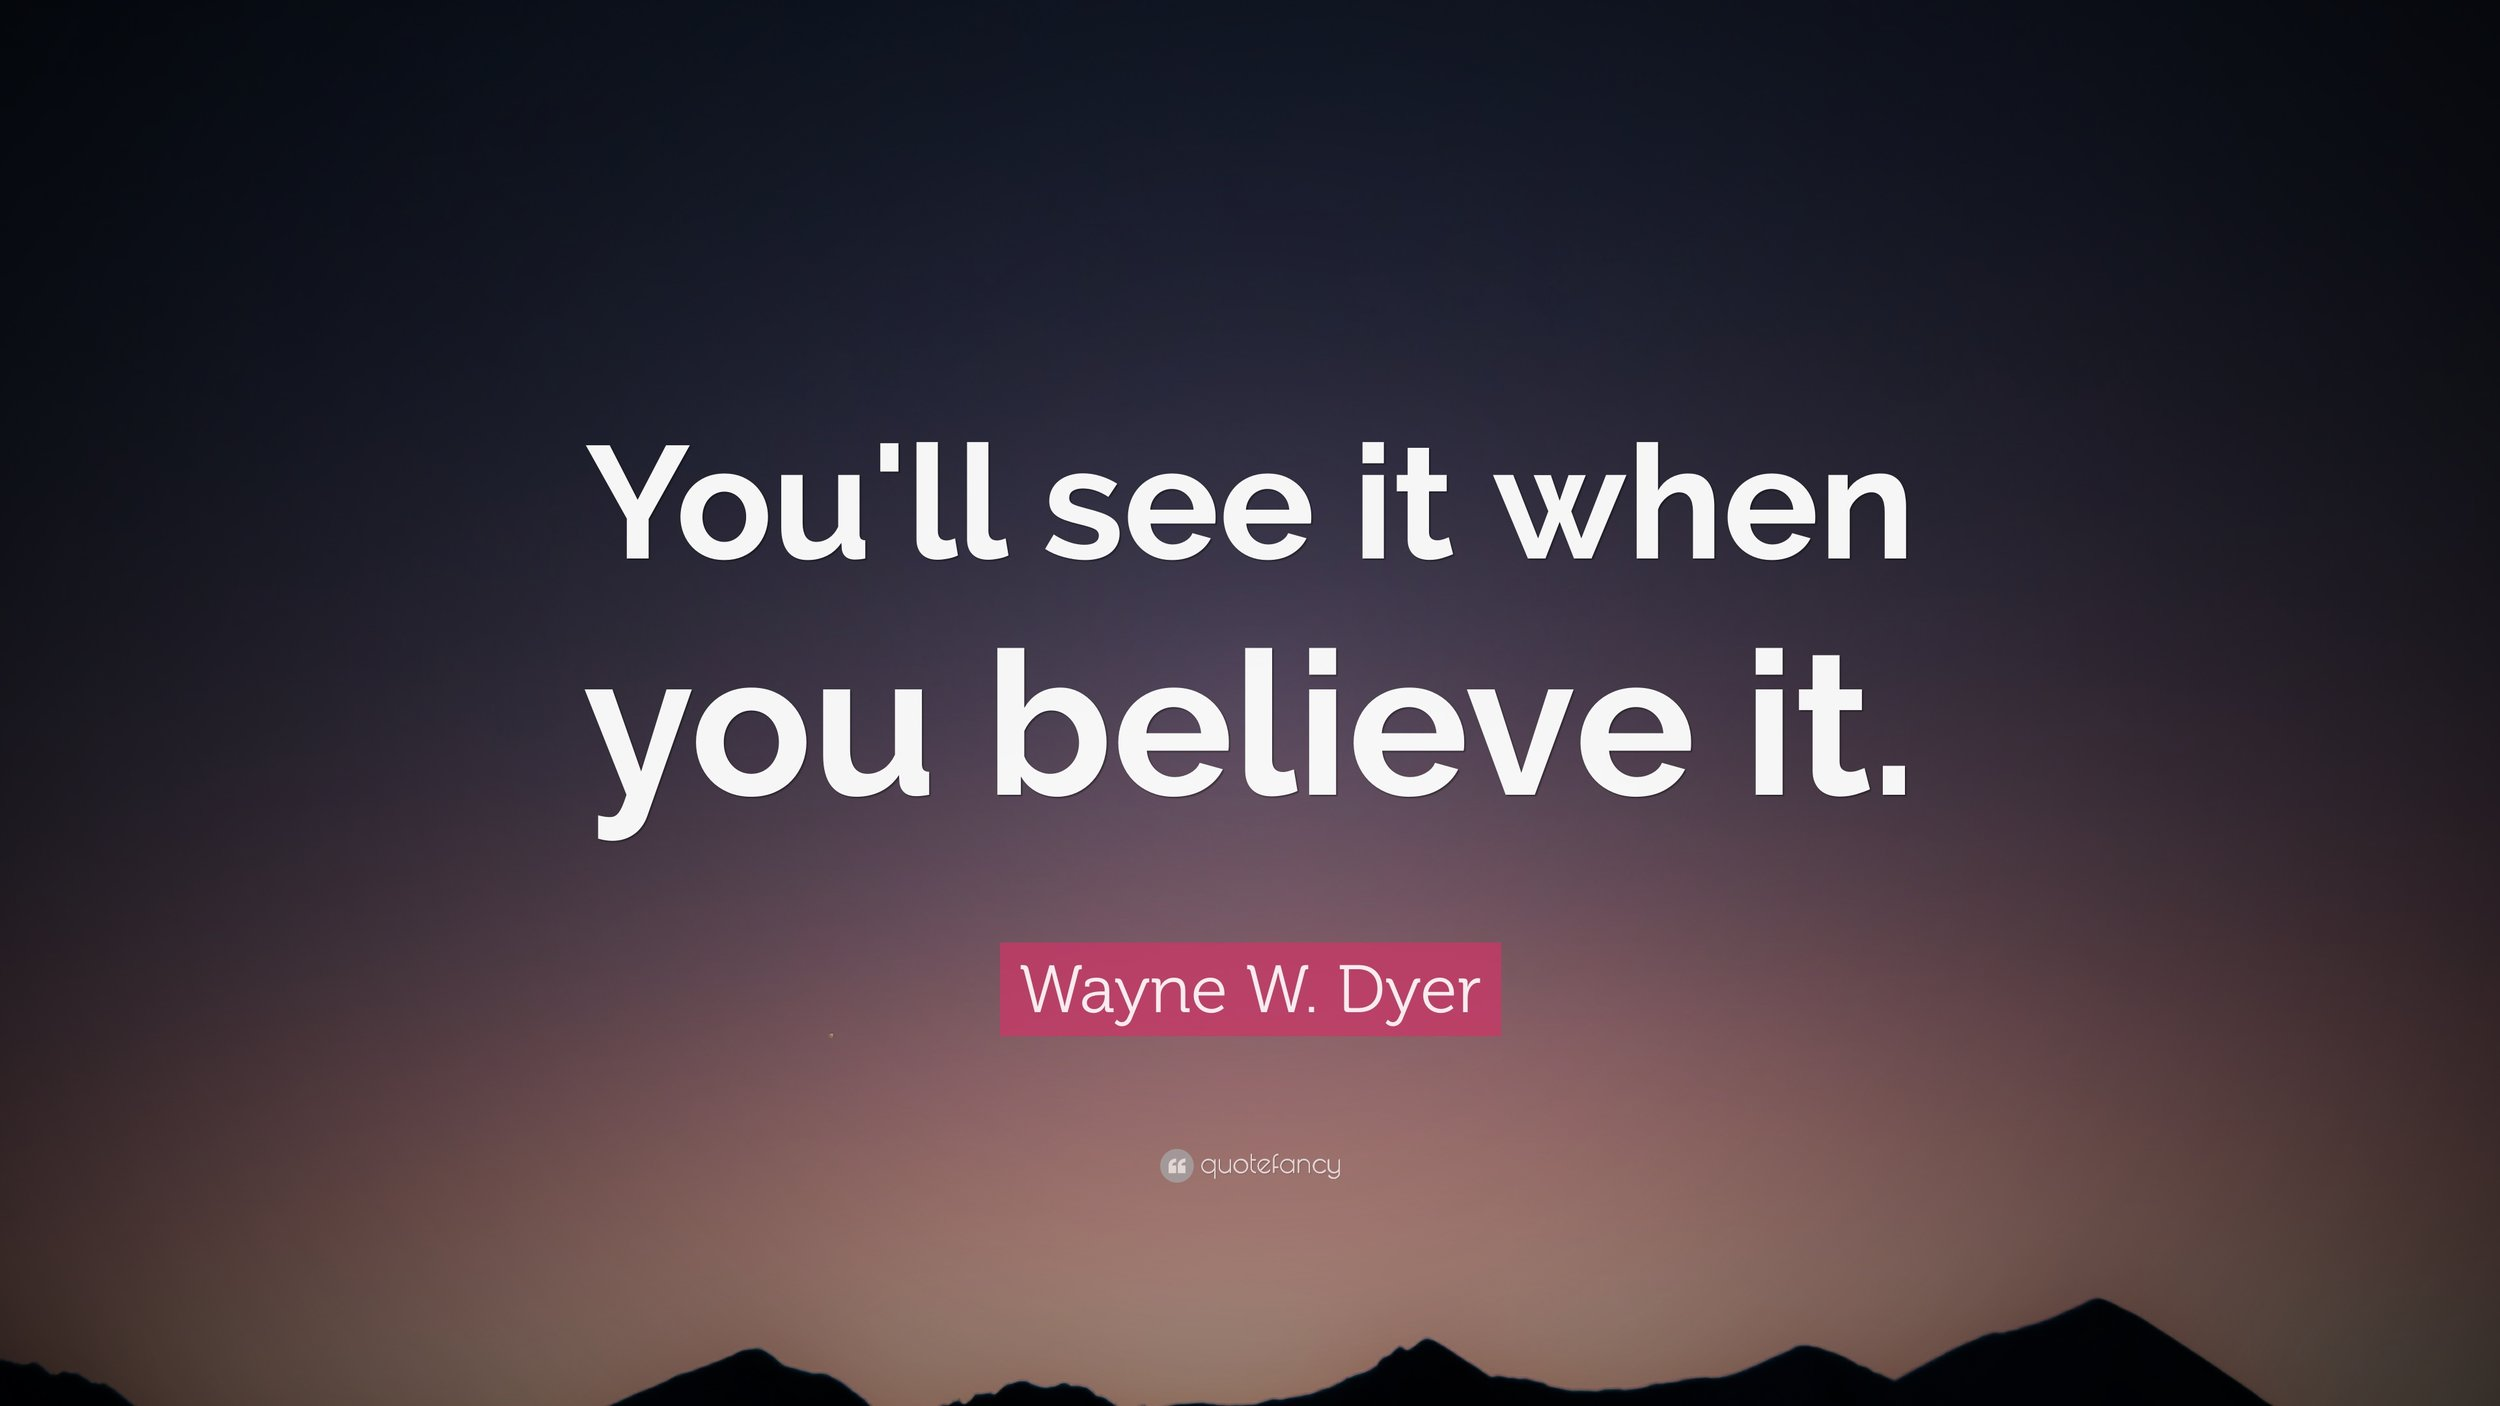 1704507-Wayne-W-Dyer-Quote-You-ll-see-it-when-you-believe-it.jpg